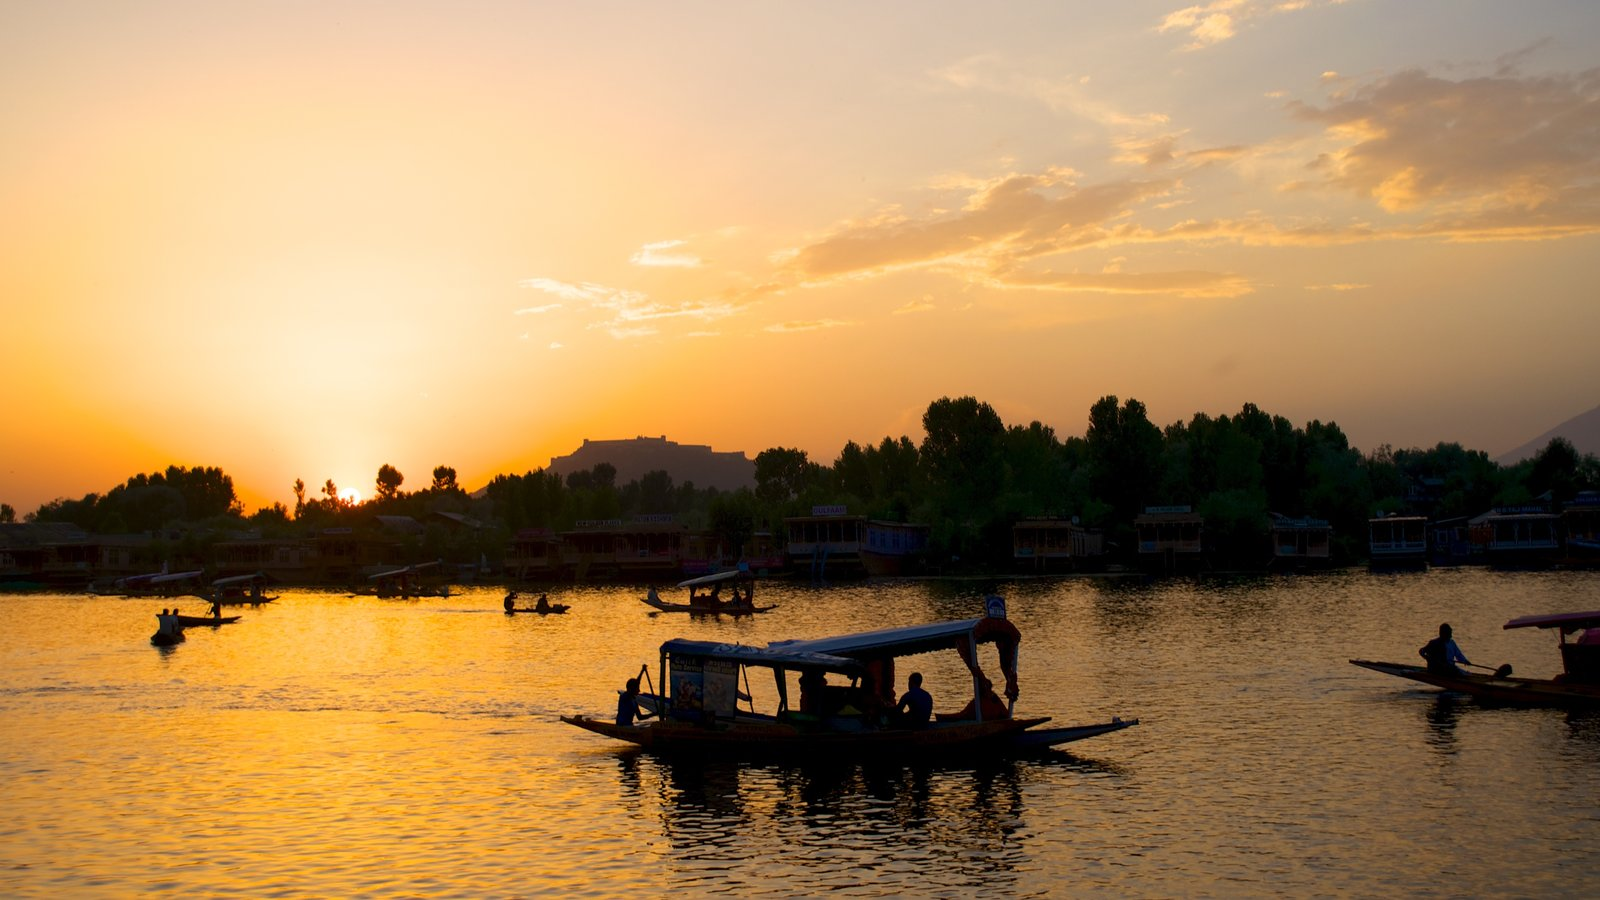 Srinagar showing a lake or waterhole, a sunset and boating